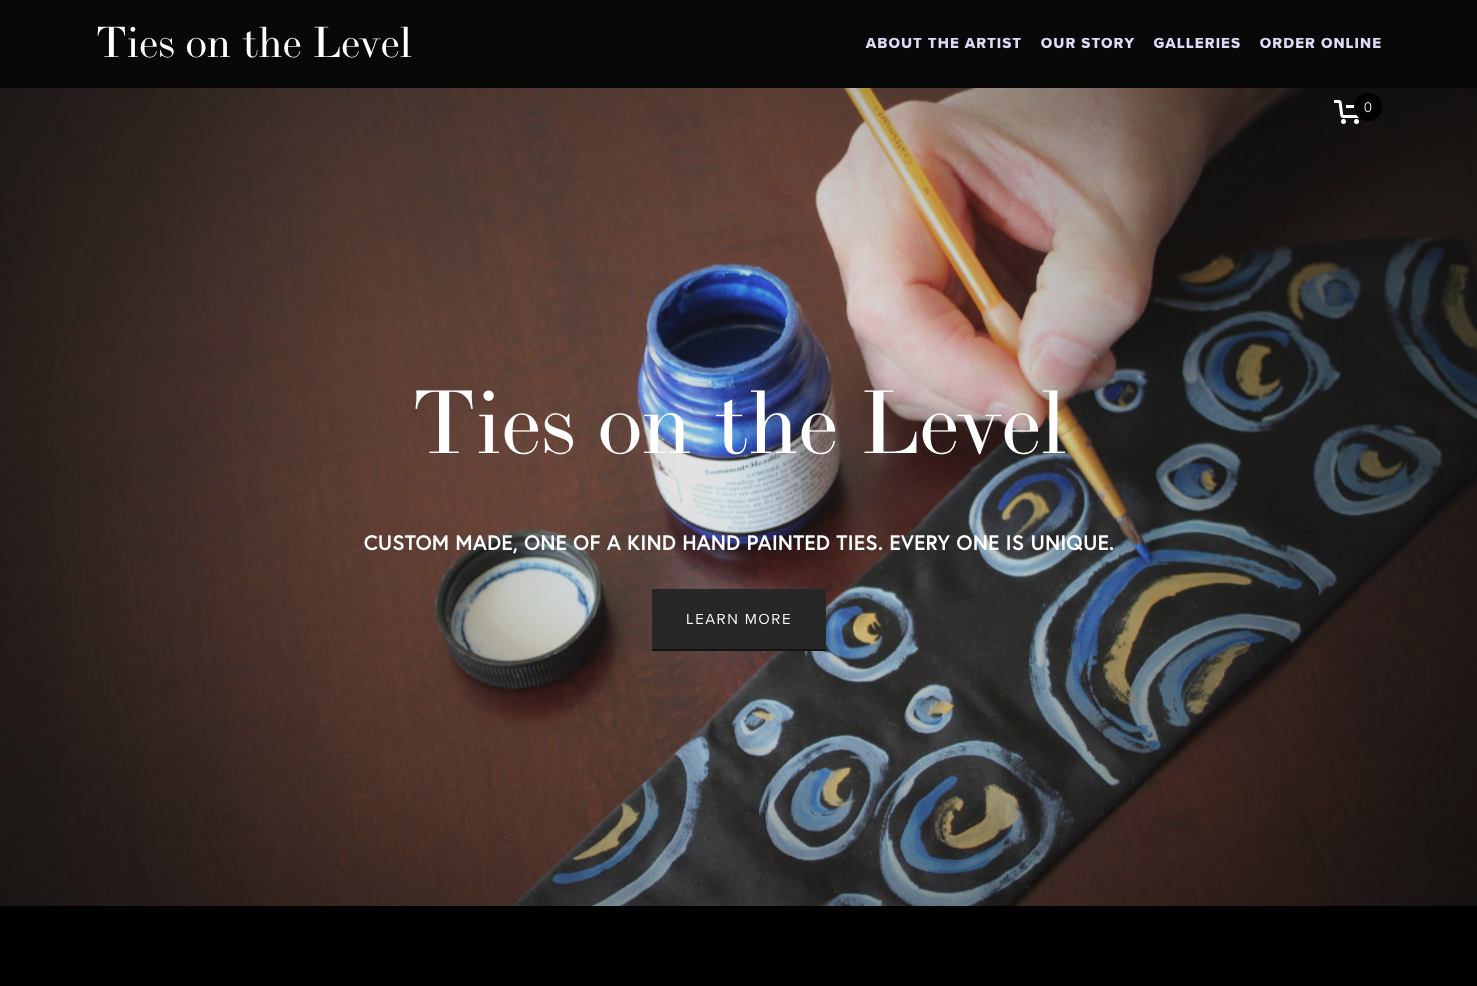 Ties on the Level - home page